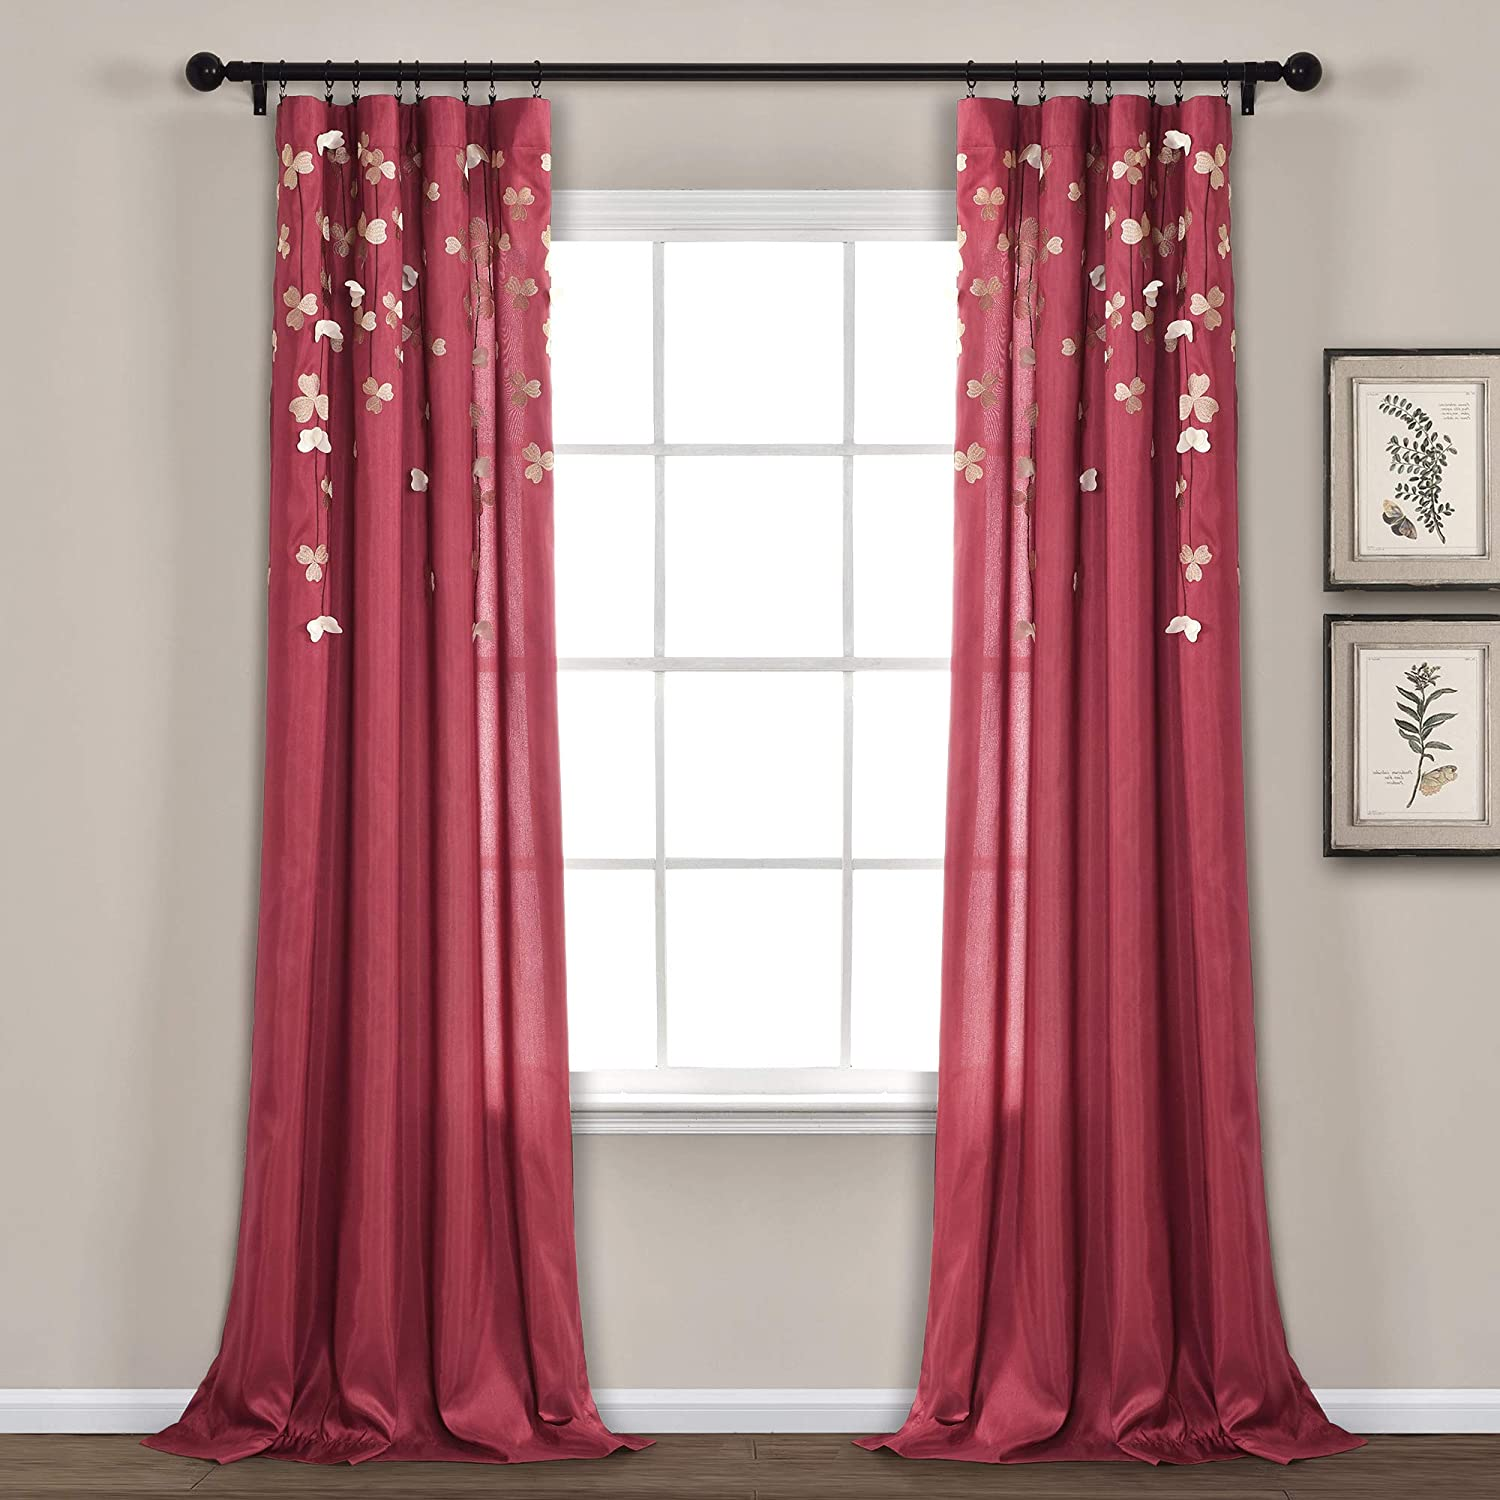 Amazon Com Lush Decor C01240q12 Flower Drops Curtain Panel For Living Room Bedroom Dining Room Single 84 X 42 Red Home Kitchen